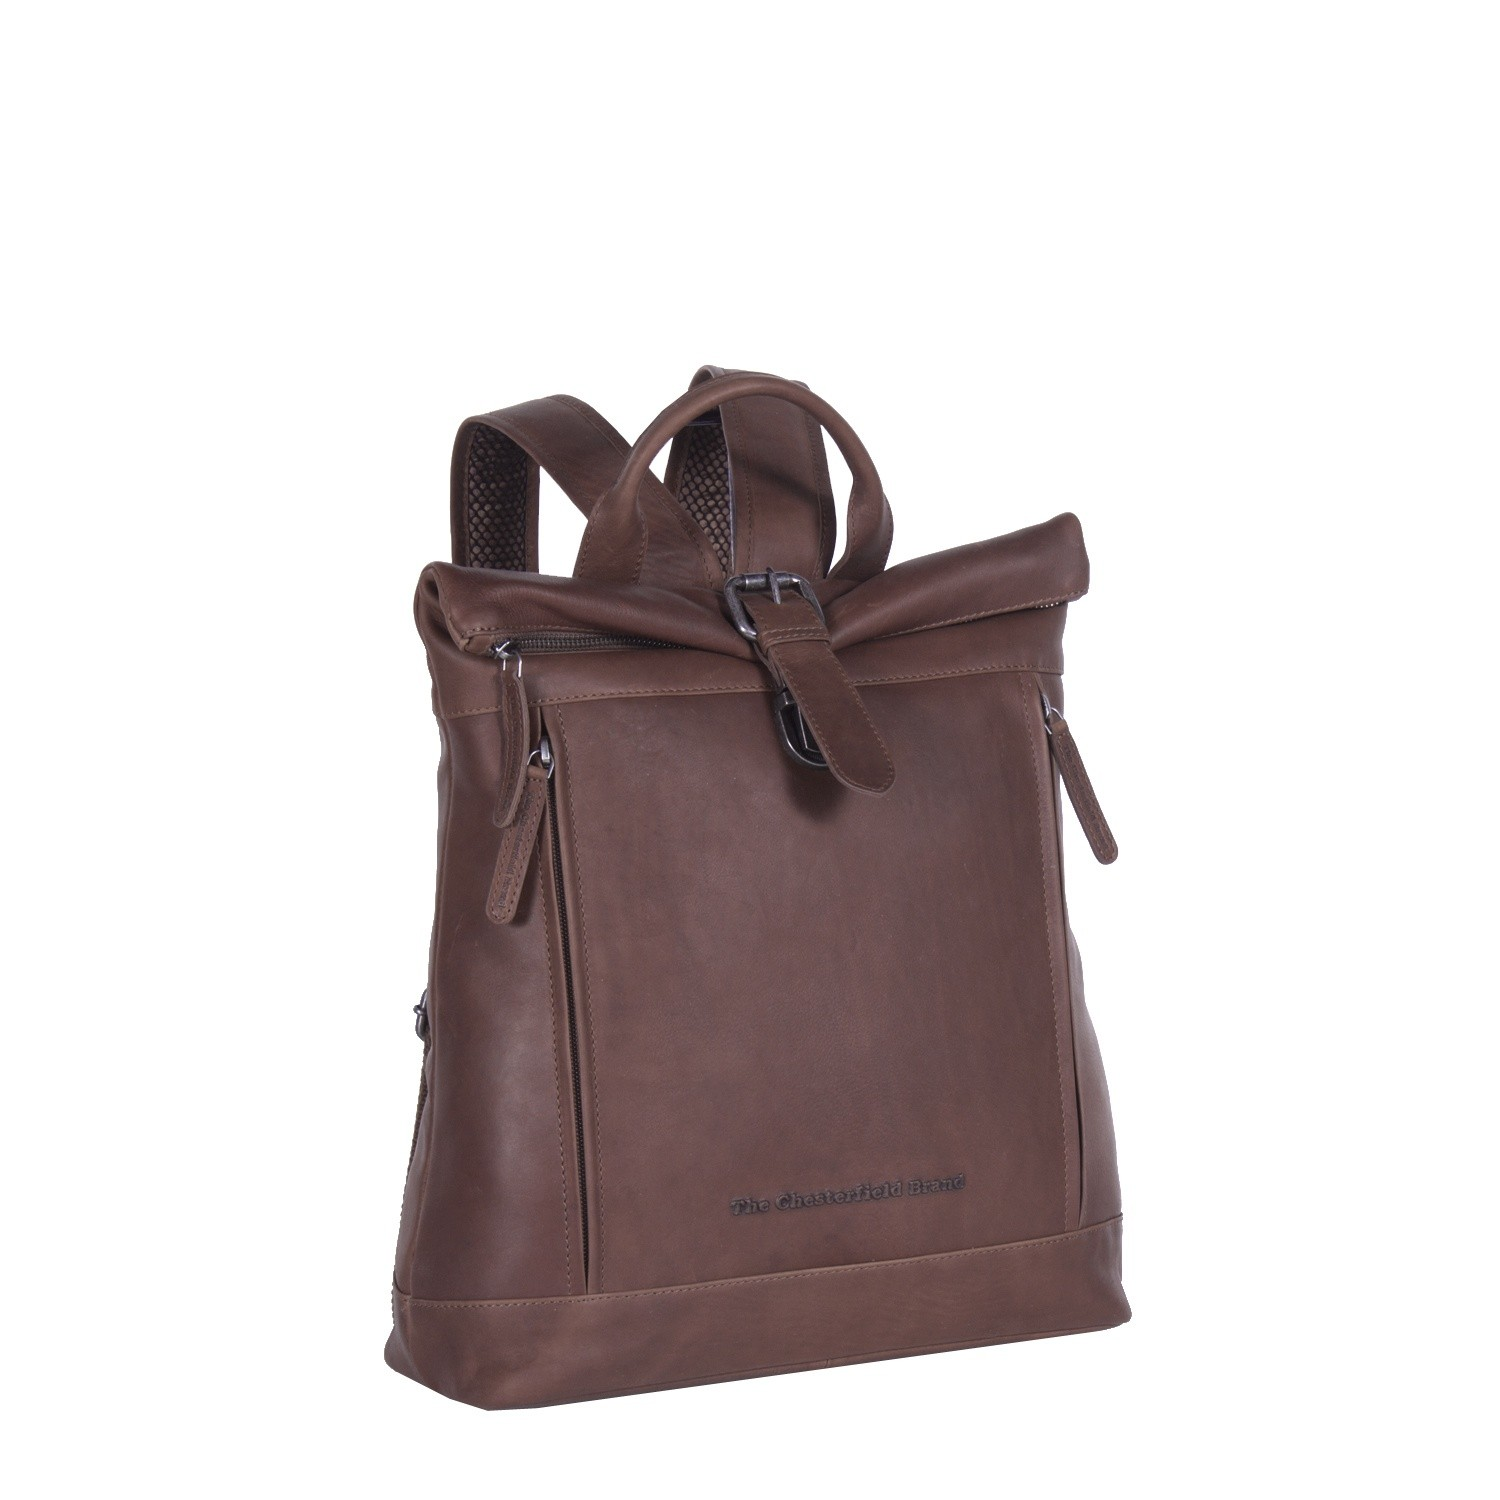 Image de Chesterfield Leather Backpack Brown Dali